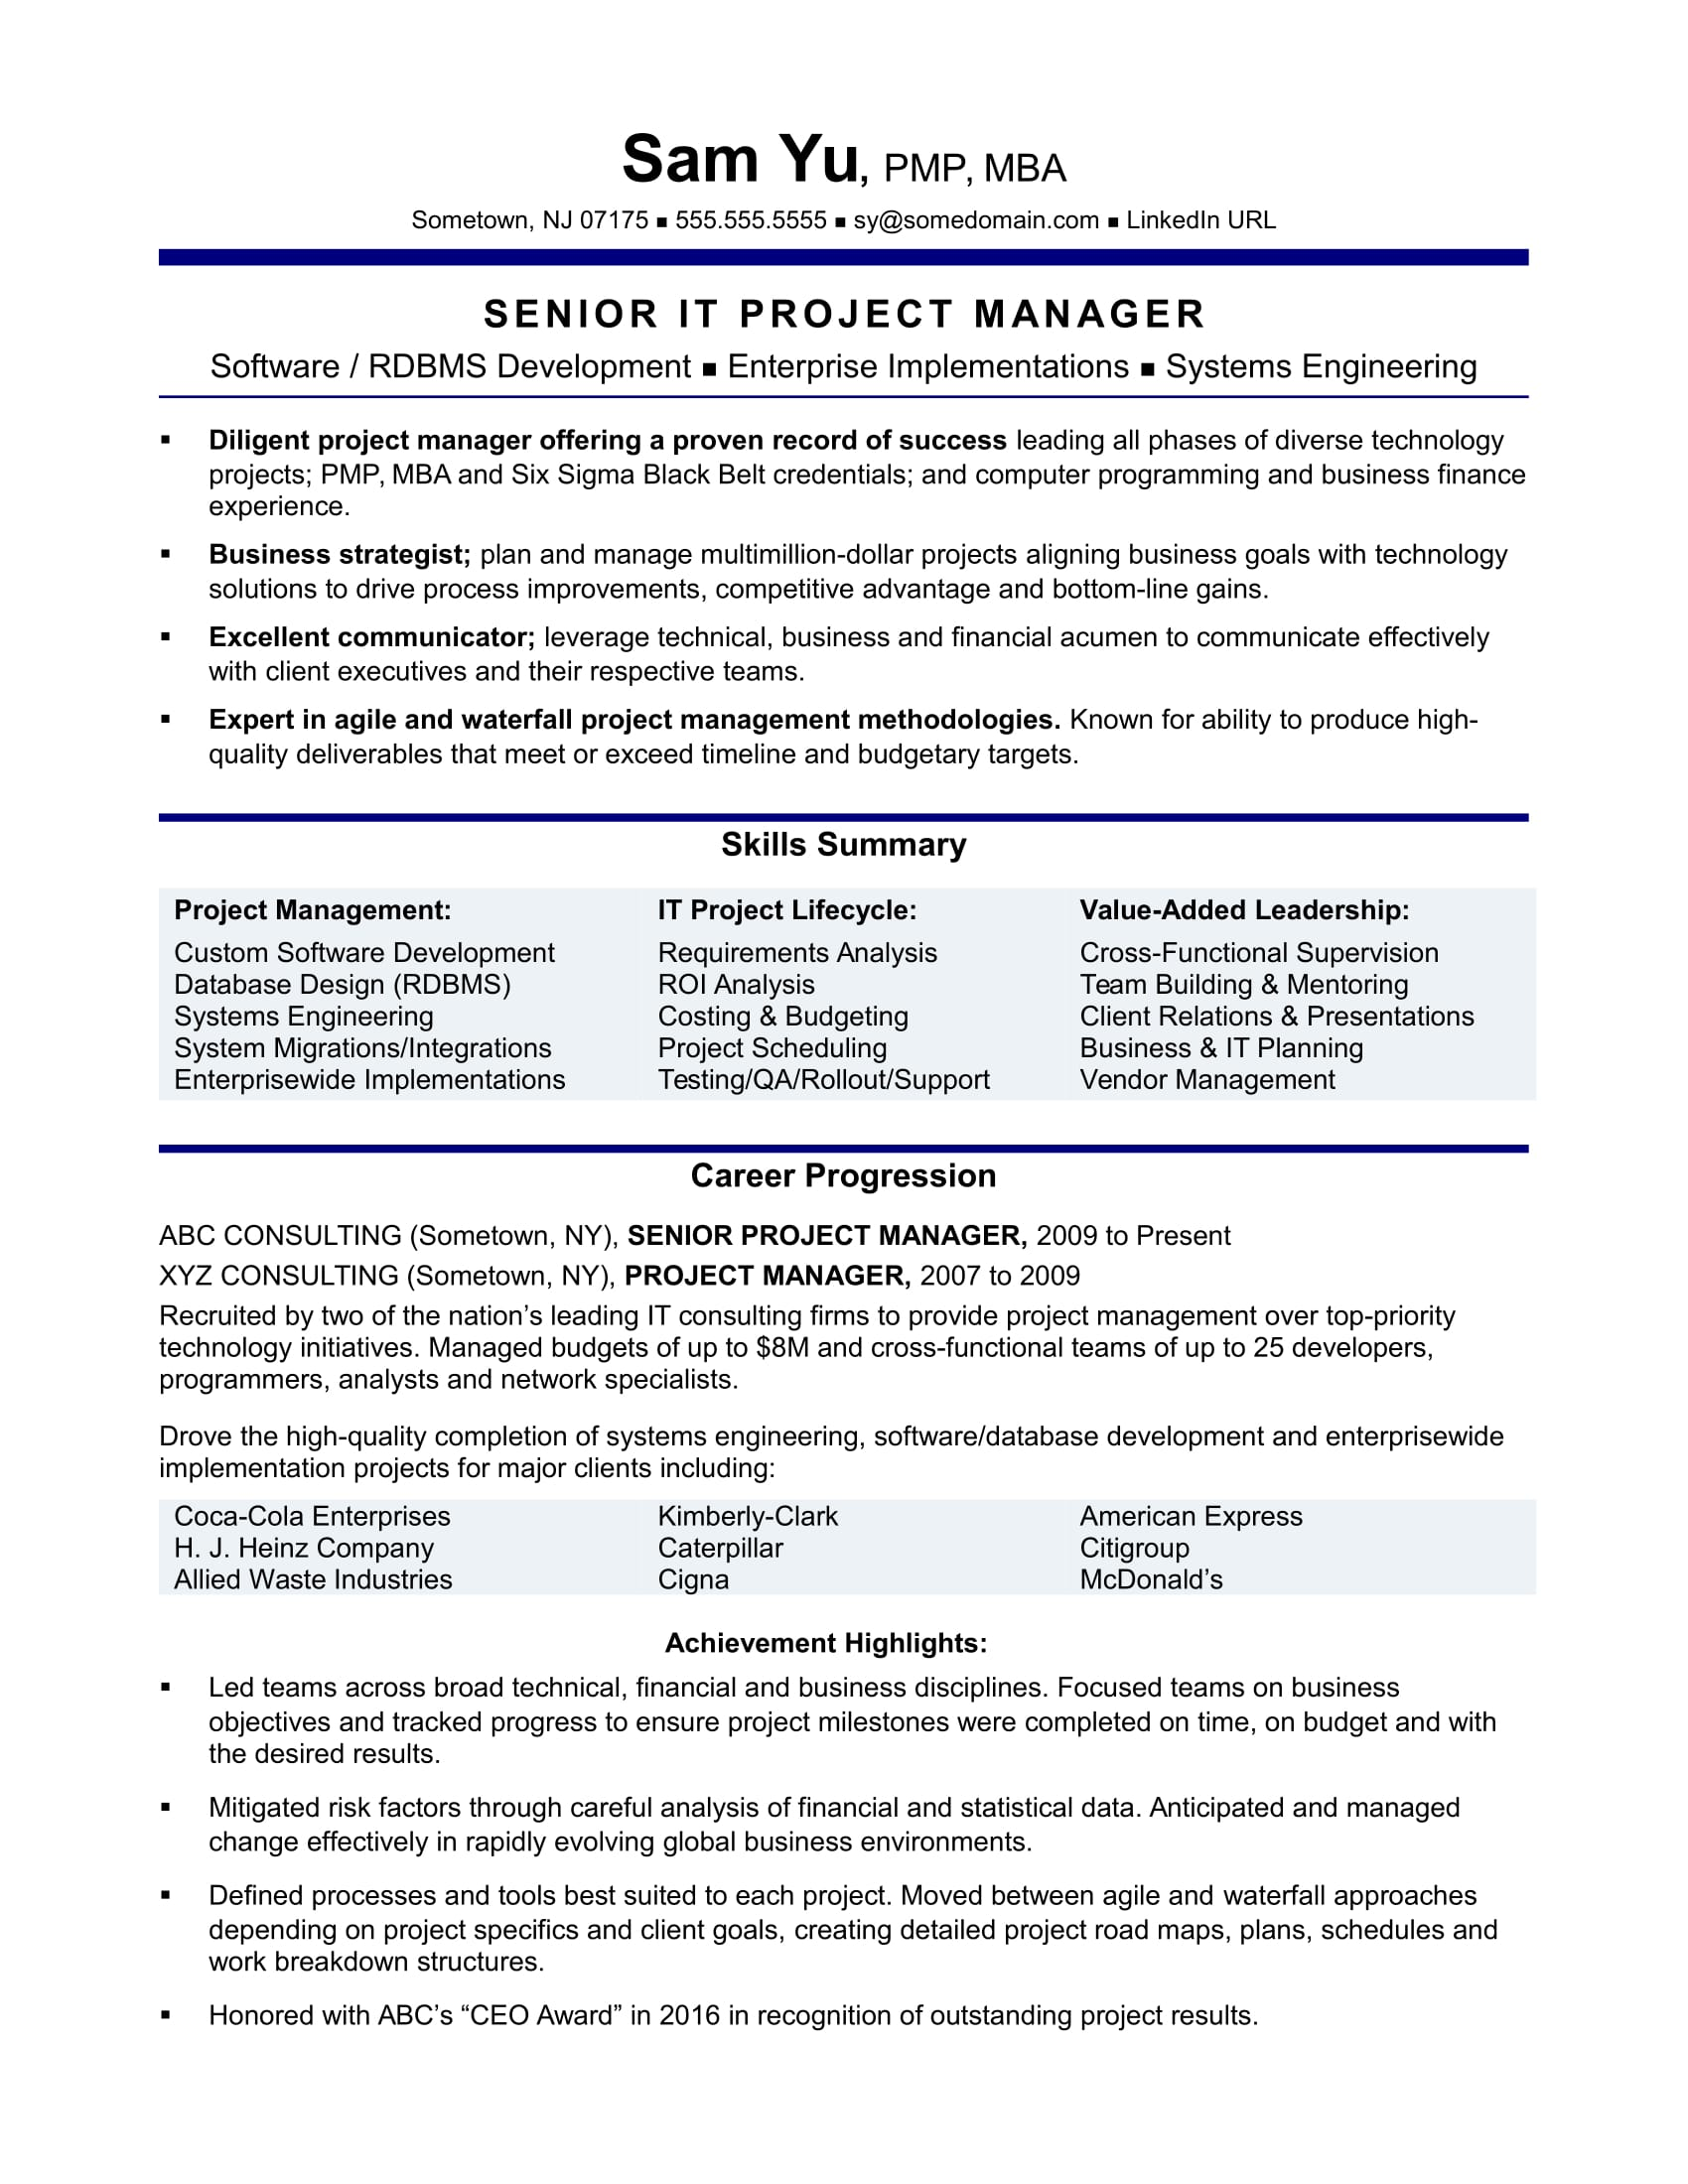 Attractive Experienced IT Project Manager Resume Sample Intended For Program Manager Resume Samples